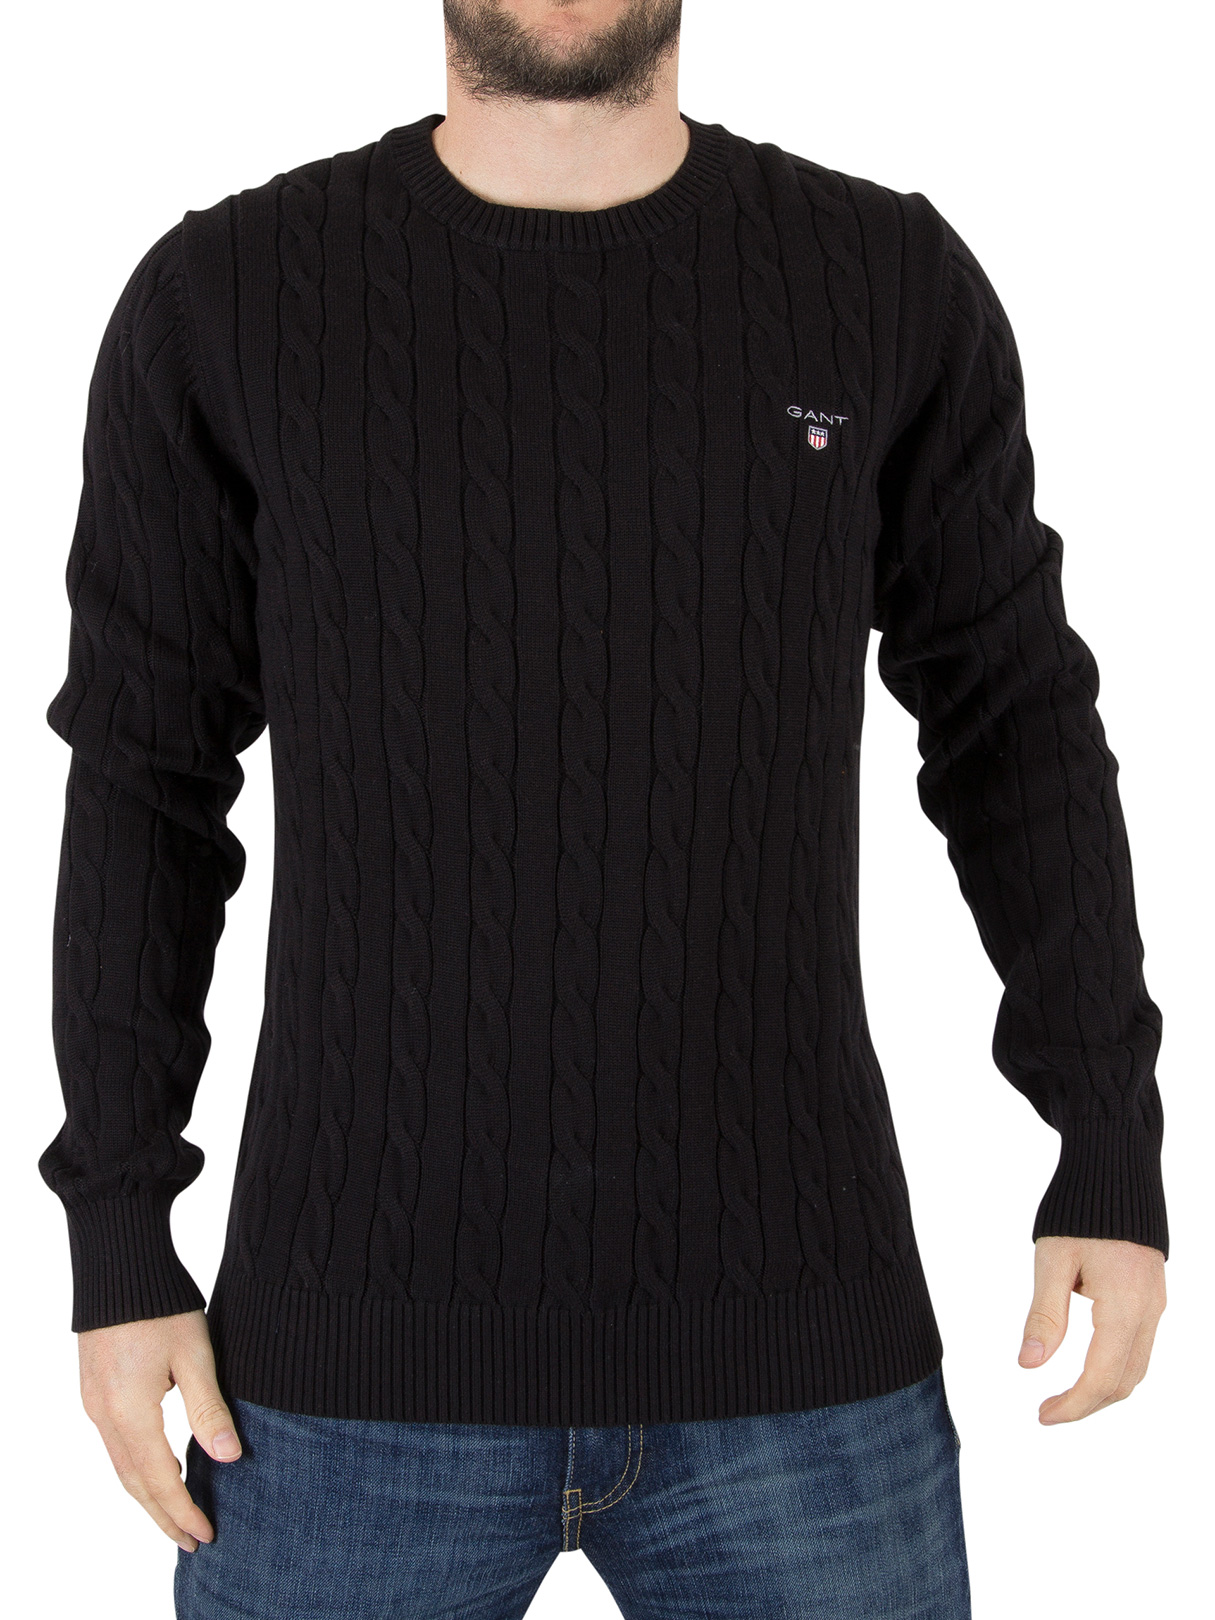 sale cheap designer clothes clearance buy now